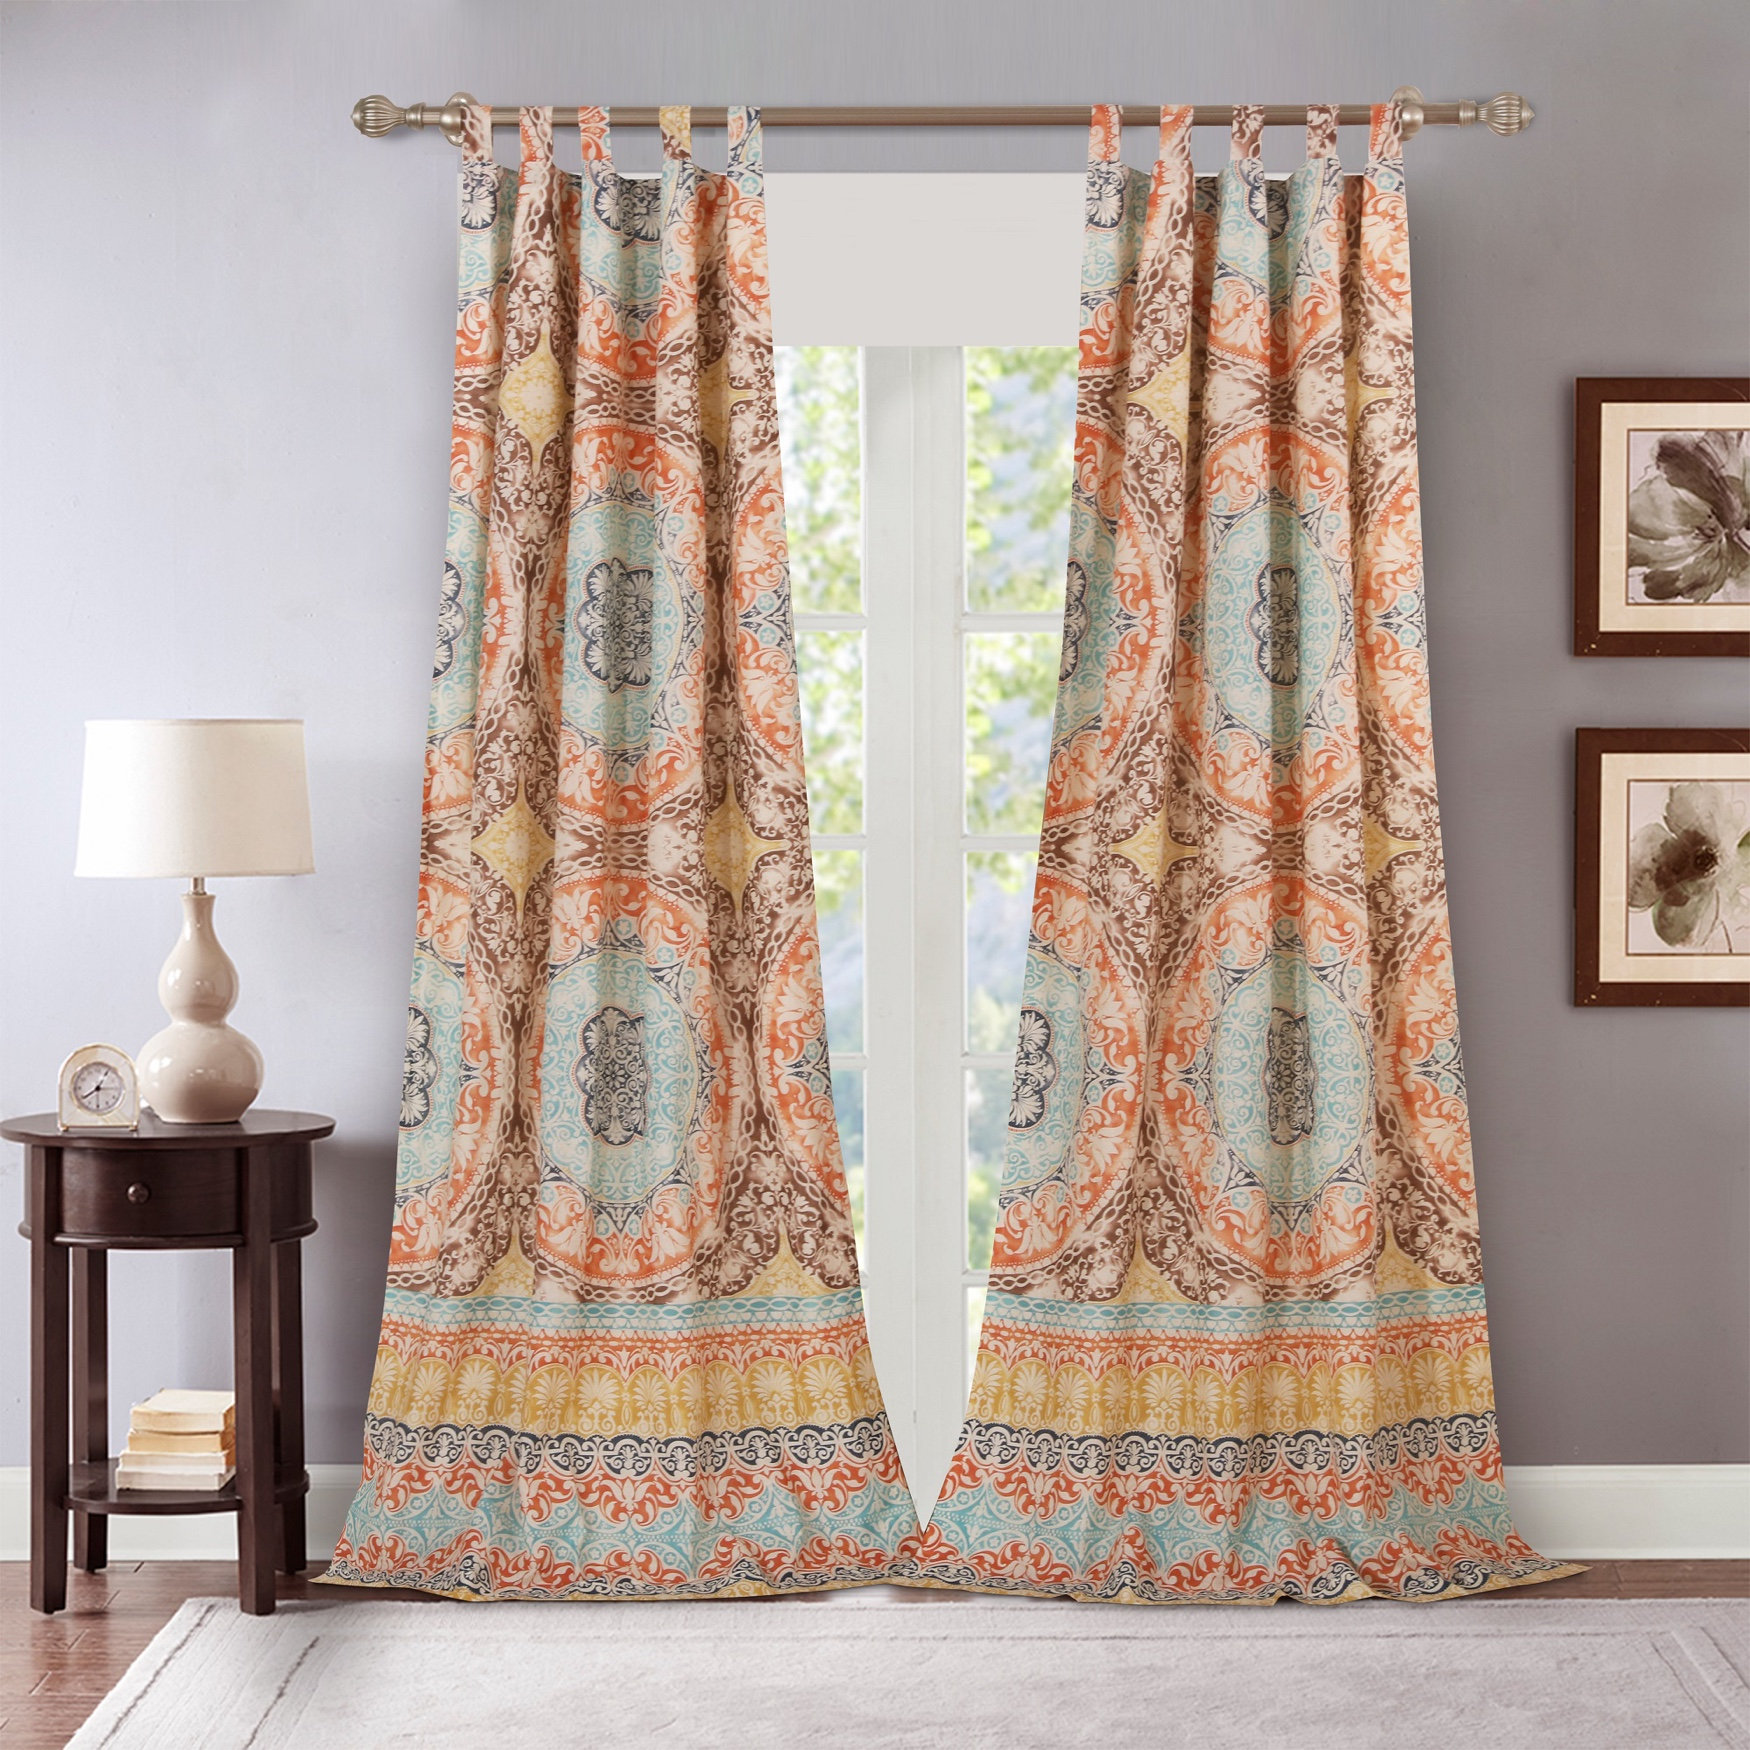 Olympia Curtain Panel Pair by Barefoot Bungalow, MULTI